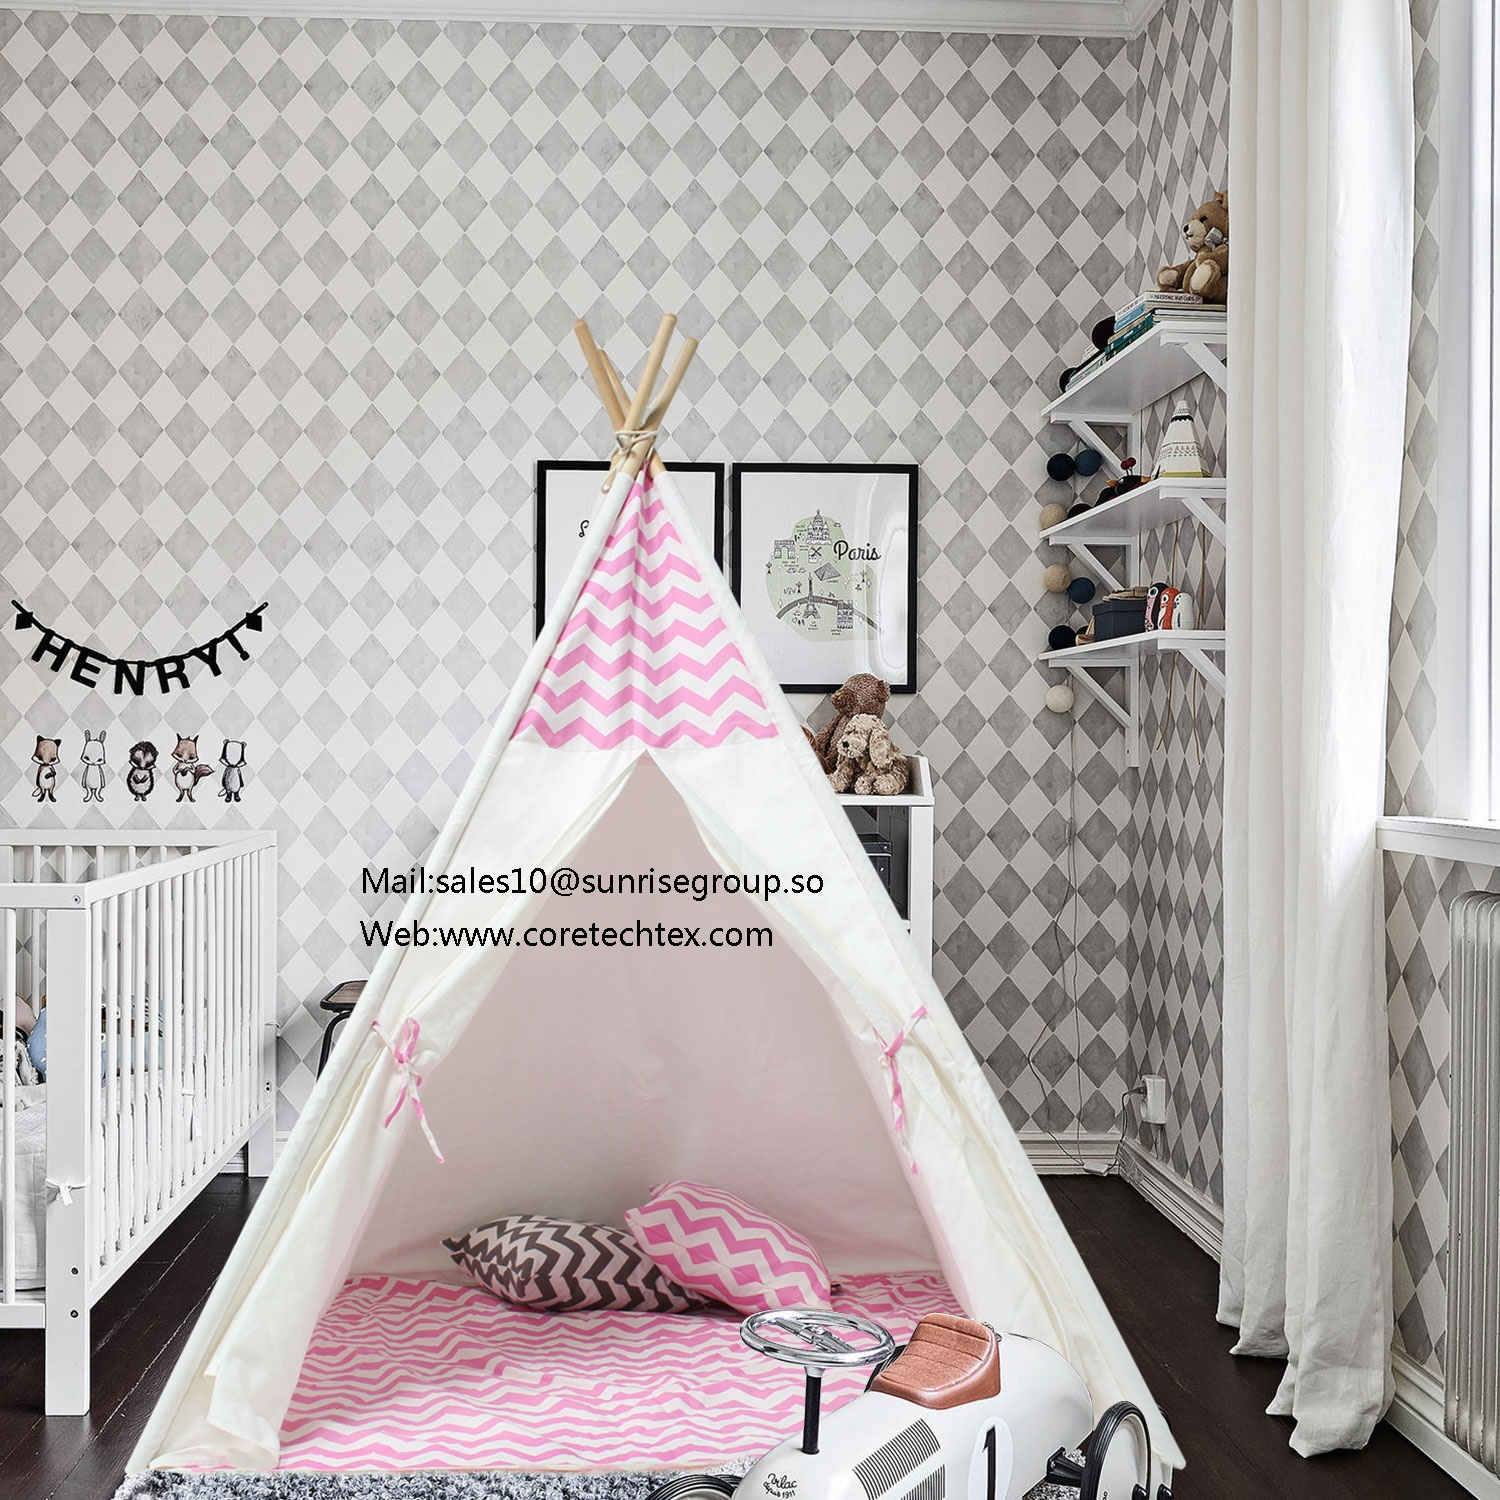 New Design Kids Play Tent Indian Teepee Children Playhouse Children Play Room